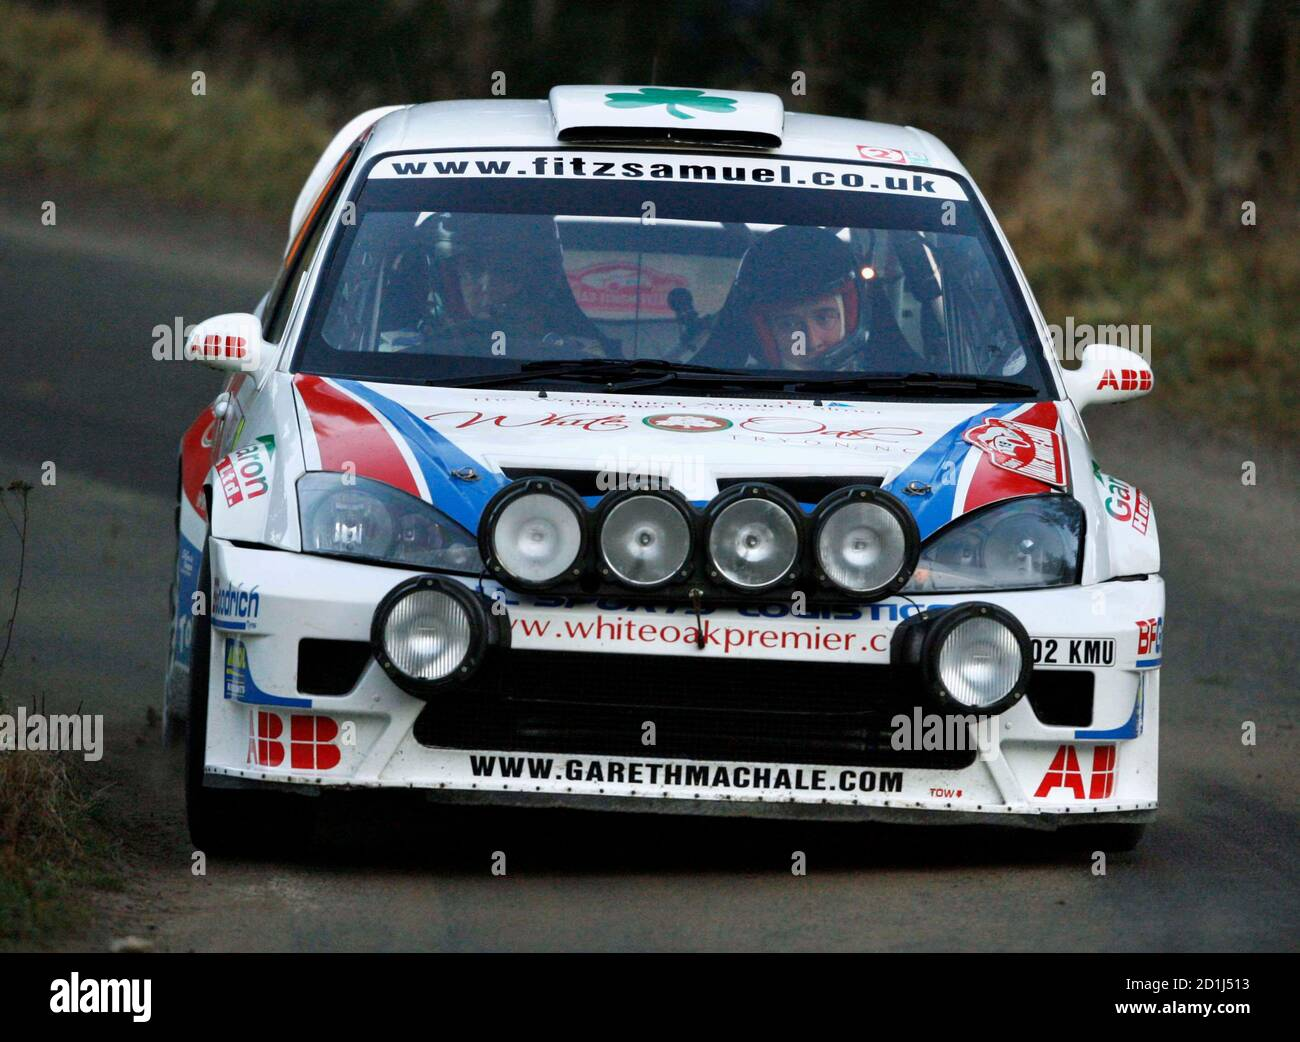 Gareth MacHale of Ireland and Paul Nagle of Great Britain drive their Ford Focus WRC during the tenth stage of the Rally of Monte-Carlo, the loop stage starting at Saint-Bonnet-le-Froid, southeastern France, January 20, 2007.   REUTERS/Robert Pratta  (FRANCE) Banque D'Images